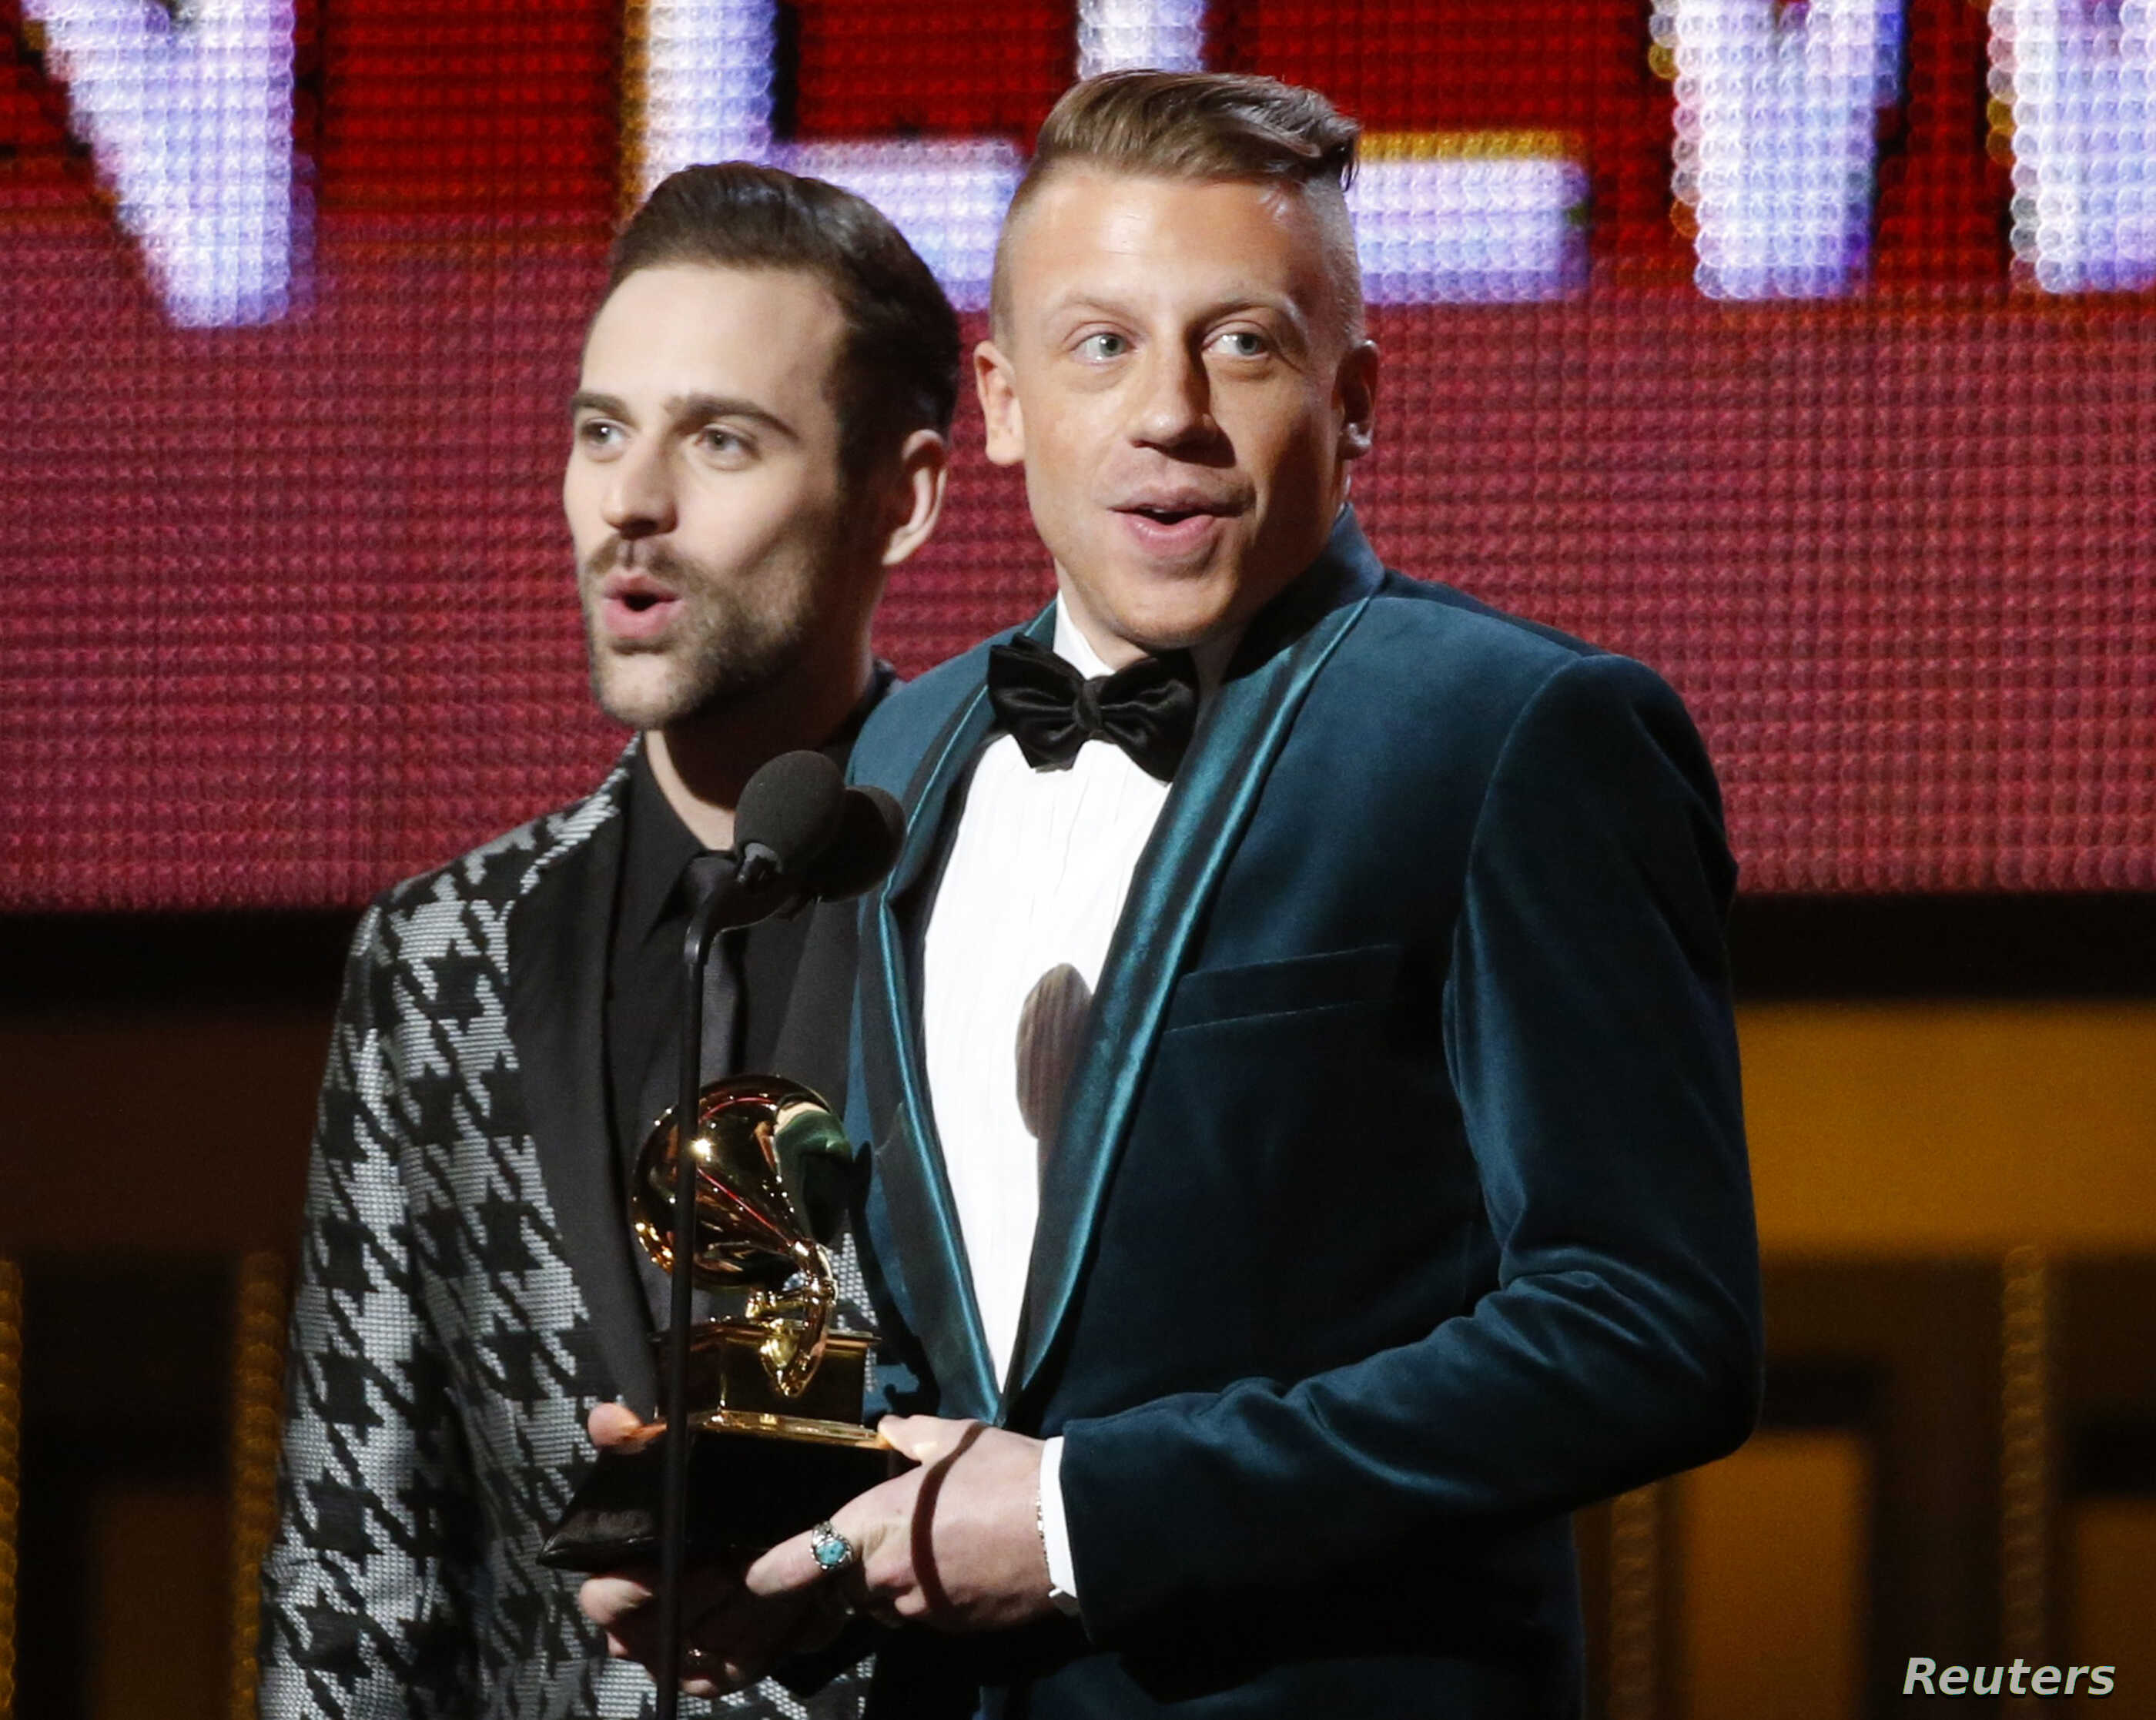 Daft Punk's 'Get Lucky' Named Record of the Year | Voice of